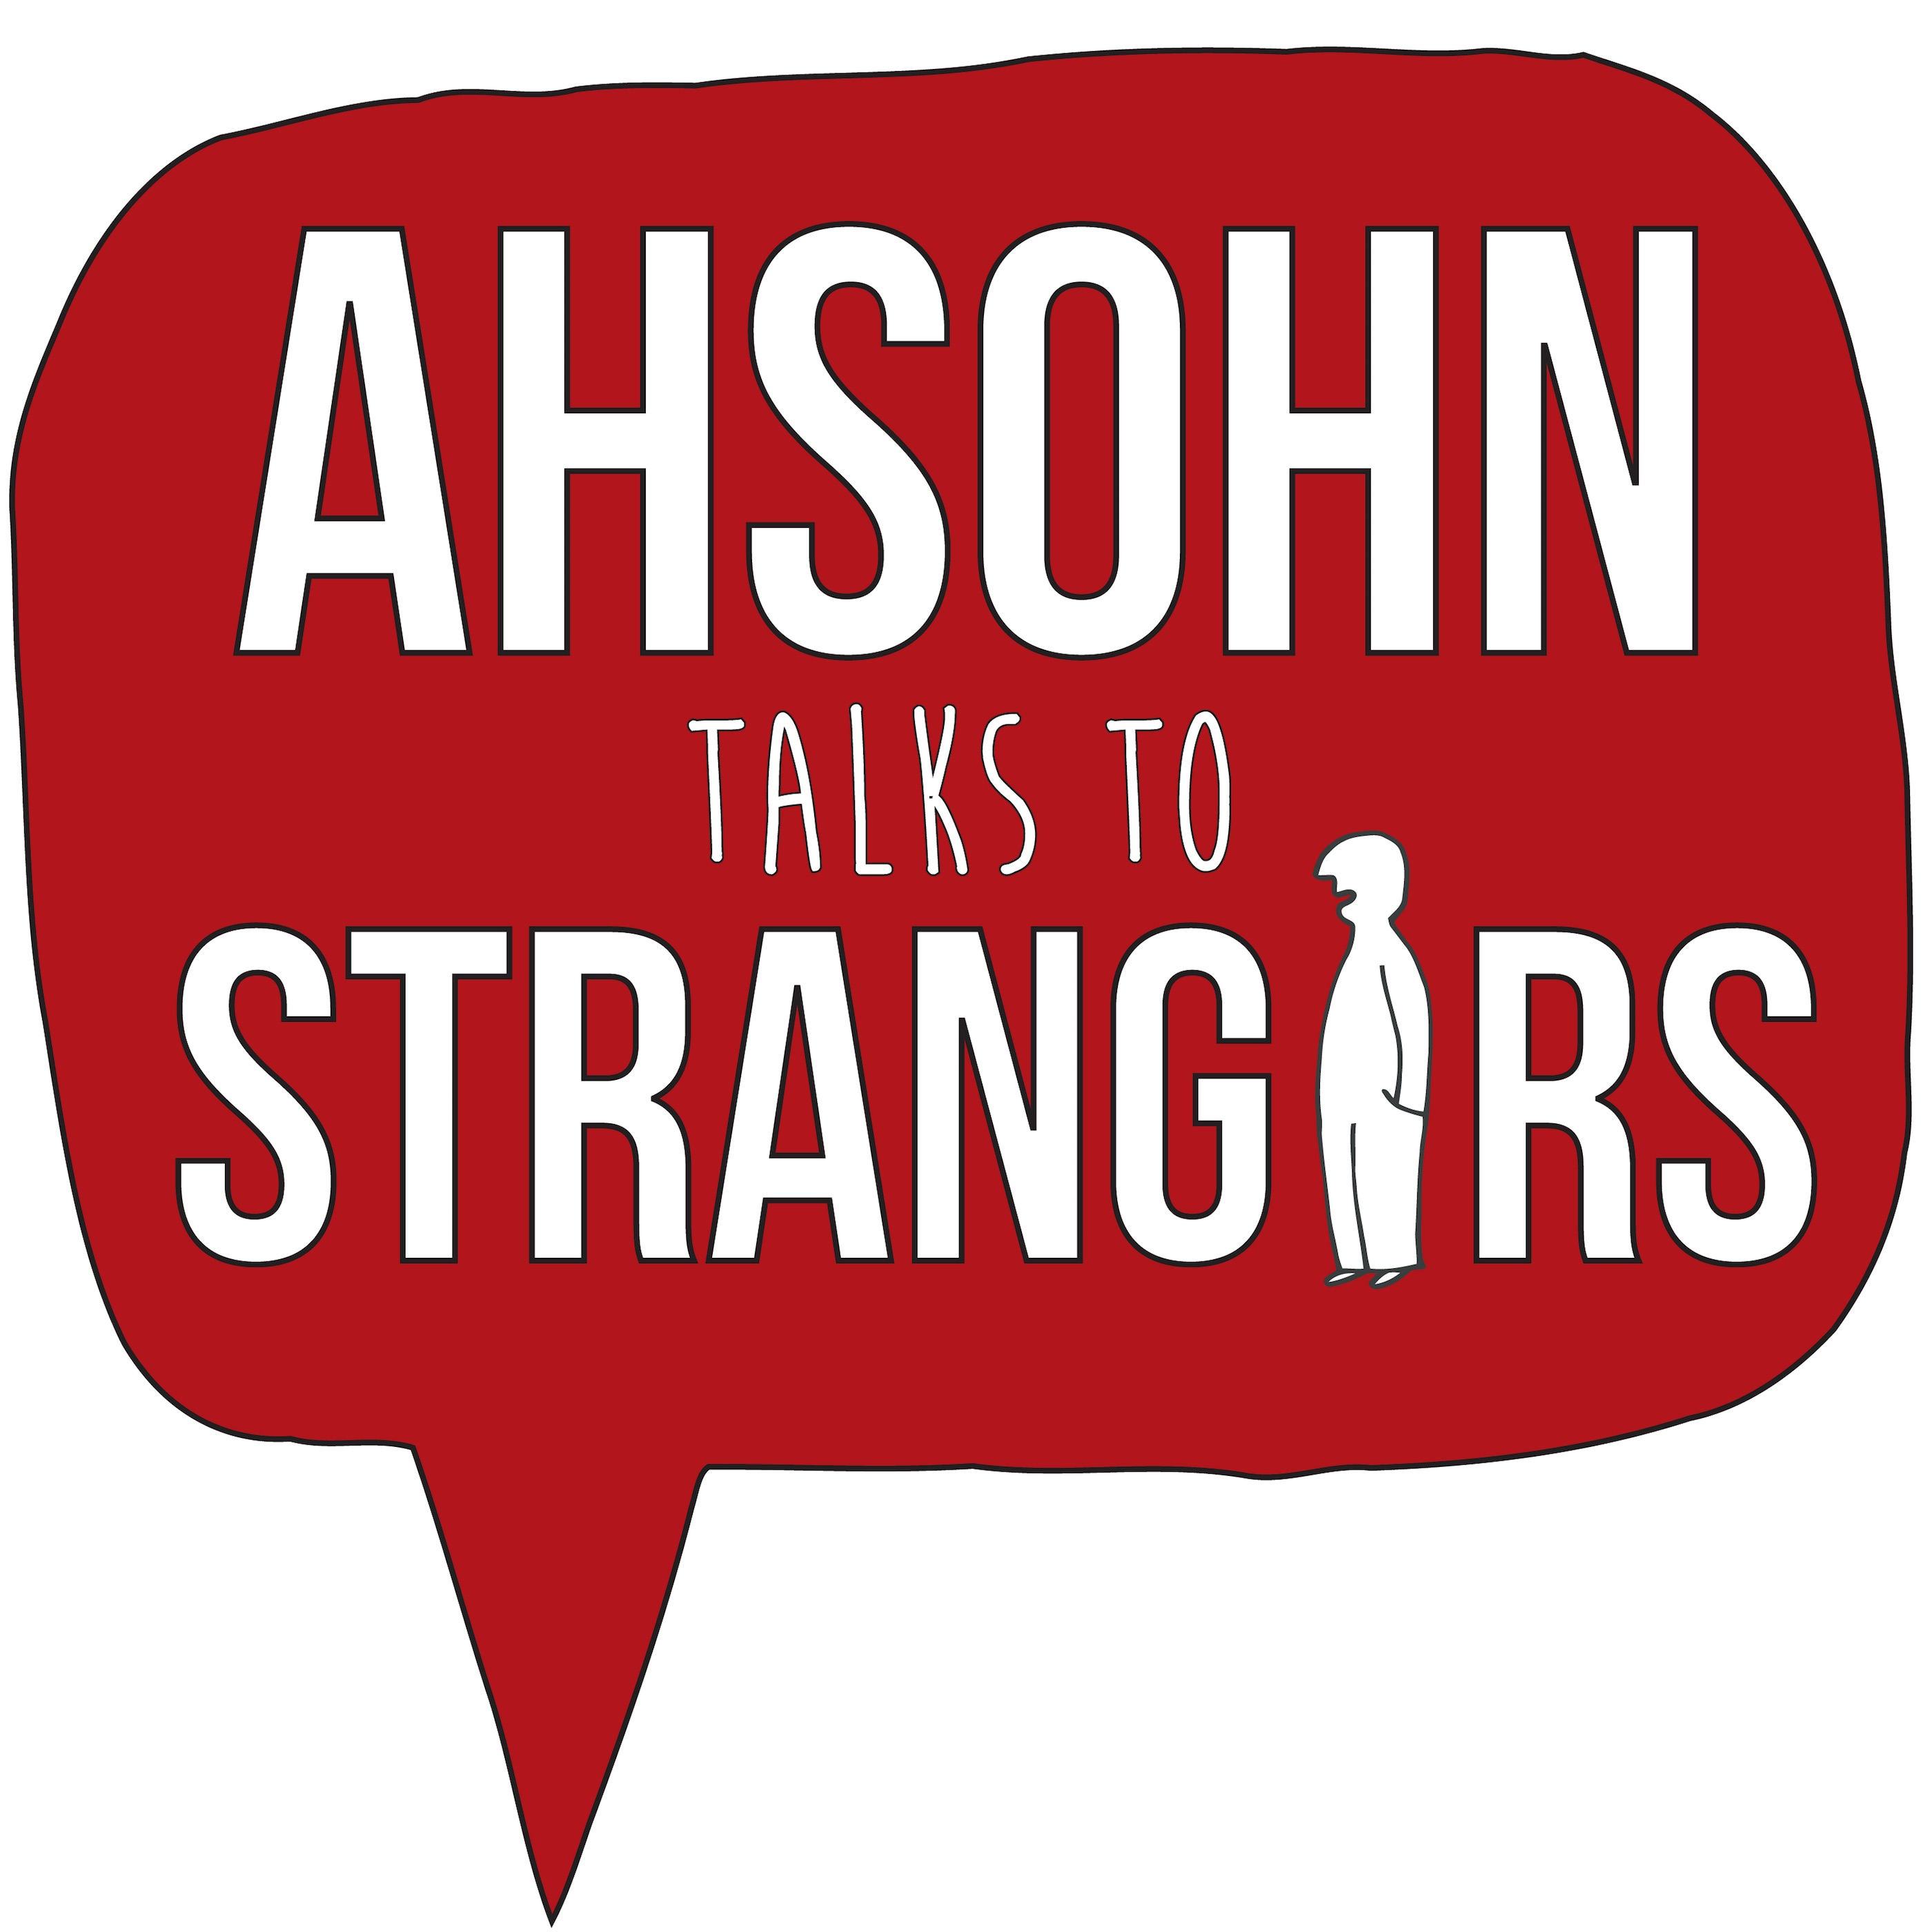 Ahsohn Talks To Strangers